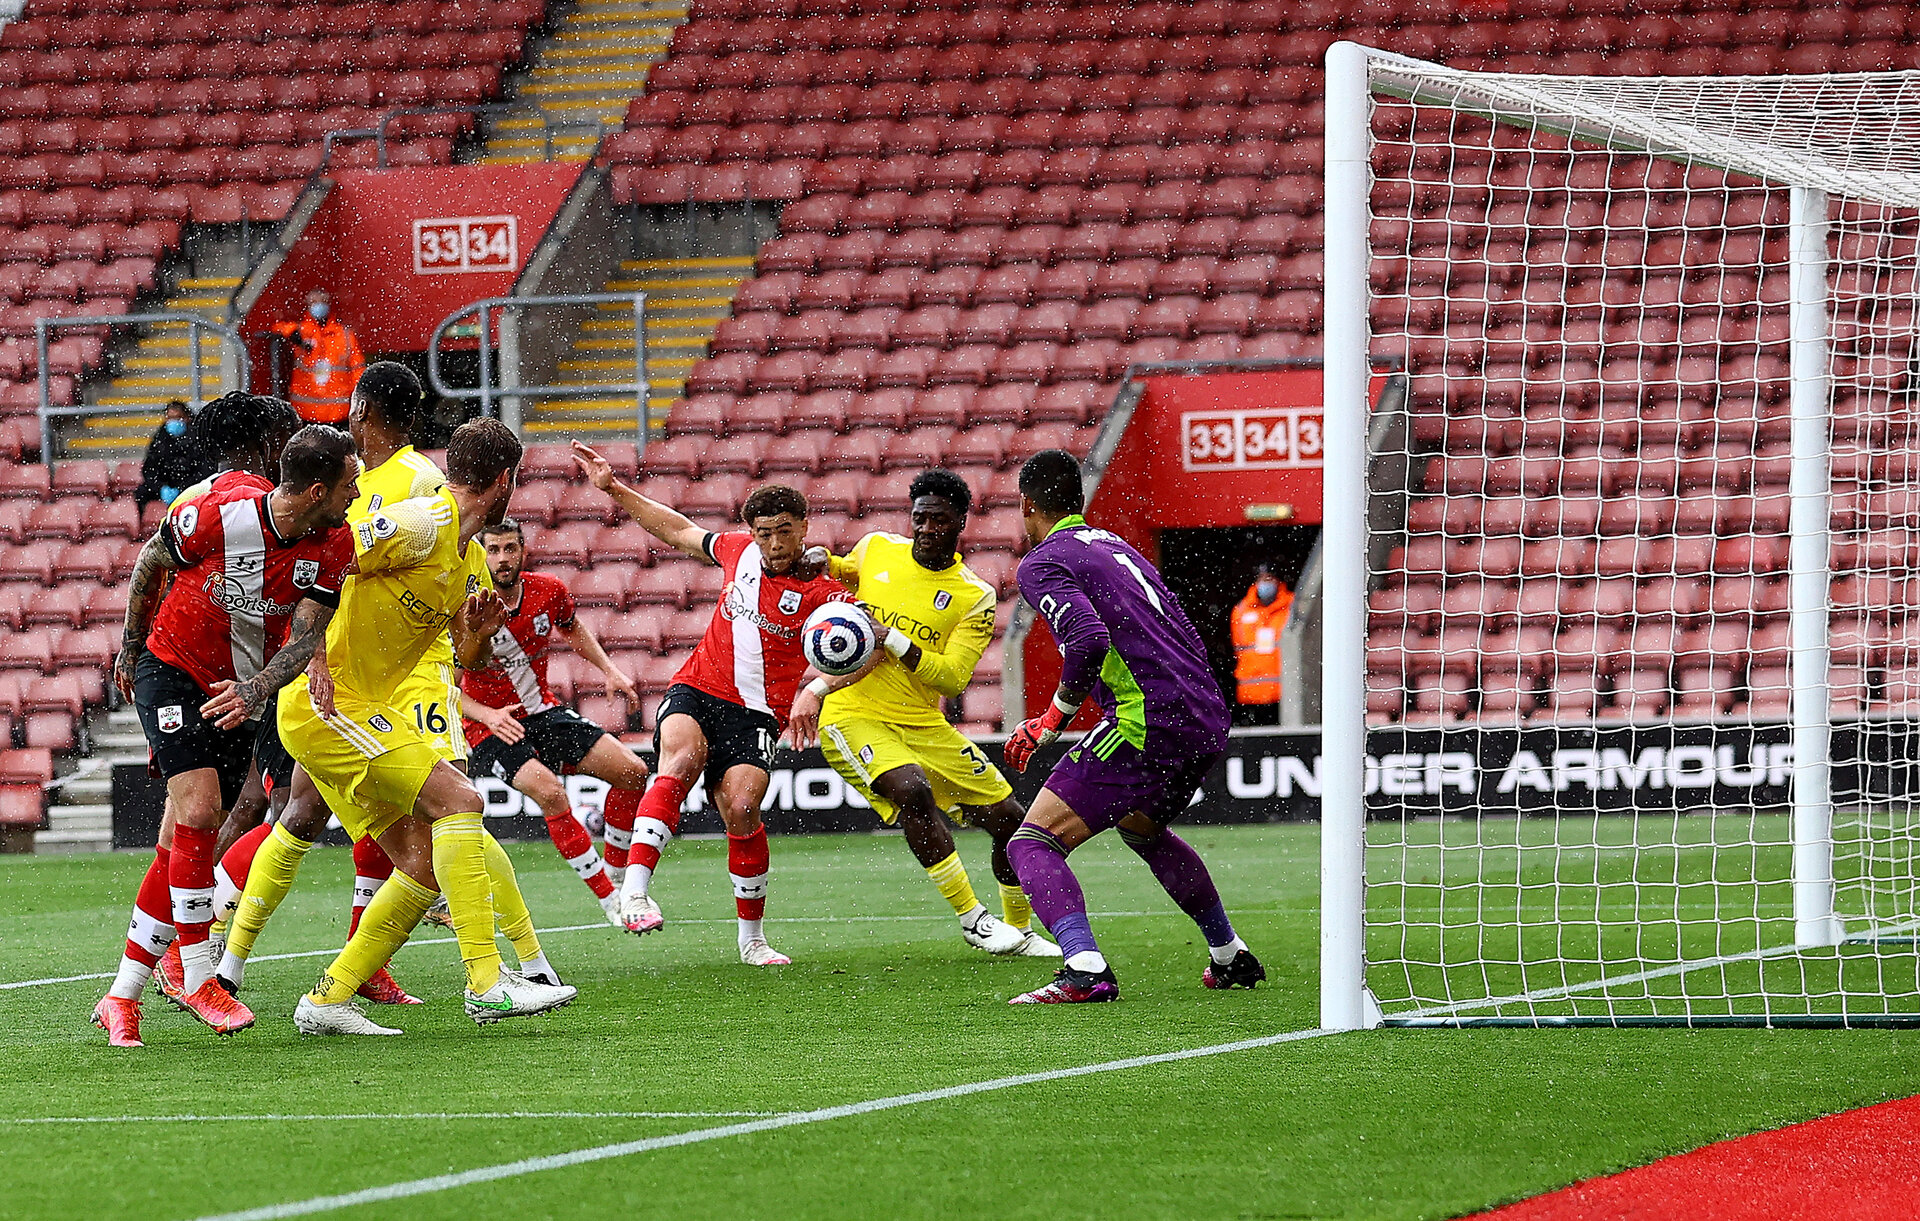 SOUTHAMPTON, ENGLAND - MAY 15: Che Adams(centre) of Southampton opens the scoring during the Premier League match between Southampton and Fulham at St Mary's Stadium on May 15, 2021 in Southampton, England. Sporting stadiums around the UK remain under strict restrictions due to the Coronavirus Pandemic as Government social distancing laws prohibit fans inside venues resulting in games being played behind closed doors.  (Photo by Matt Watson/Southampton FC via Getty Images)